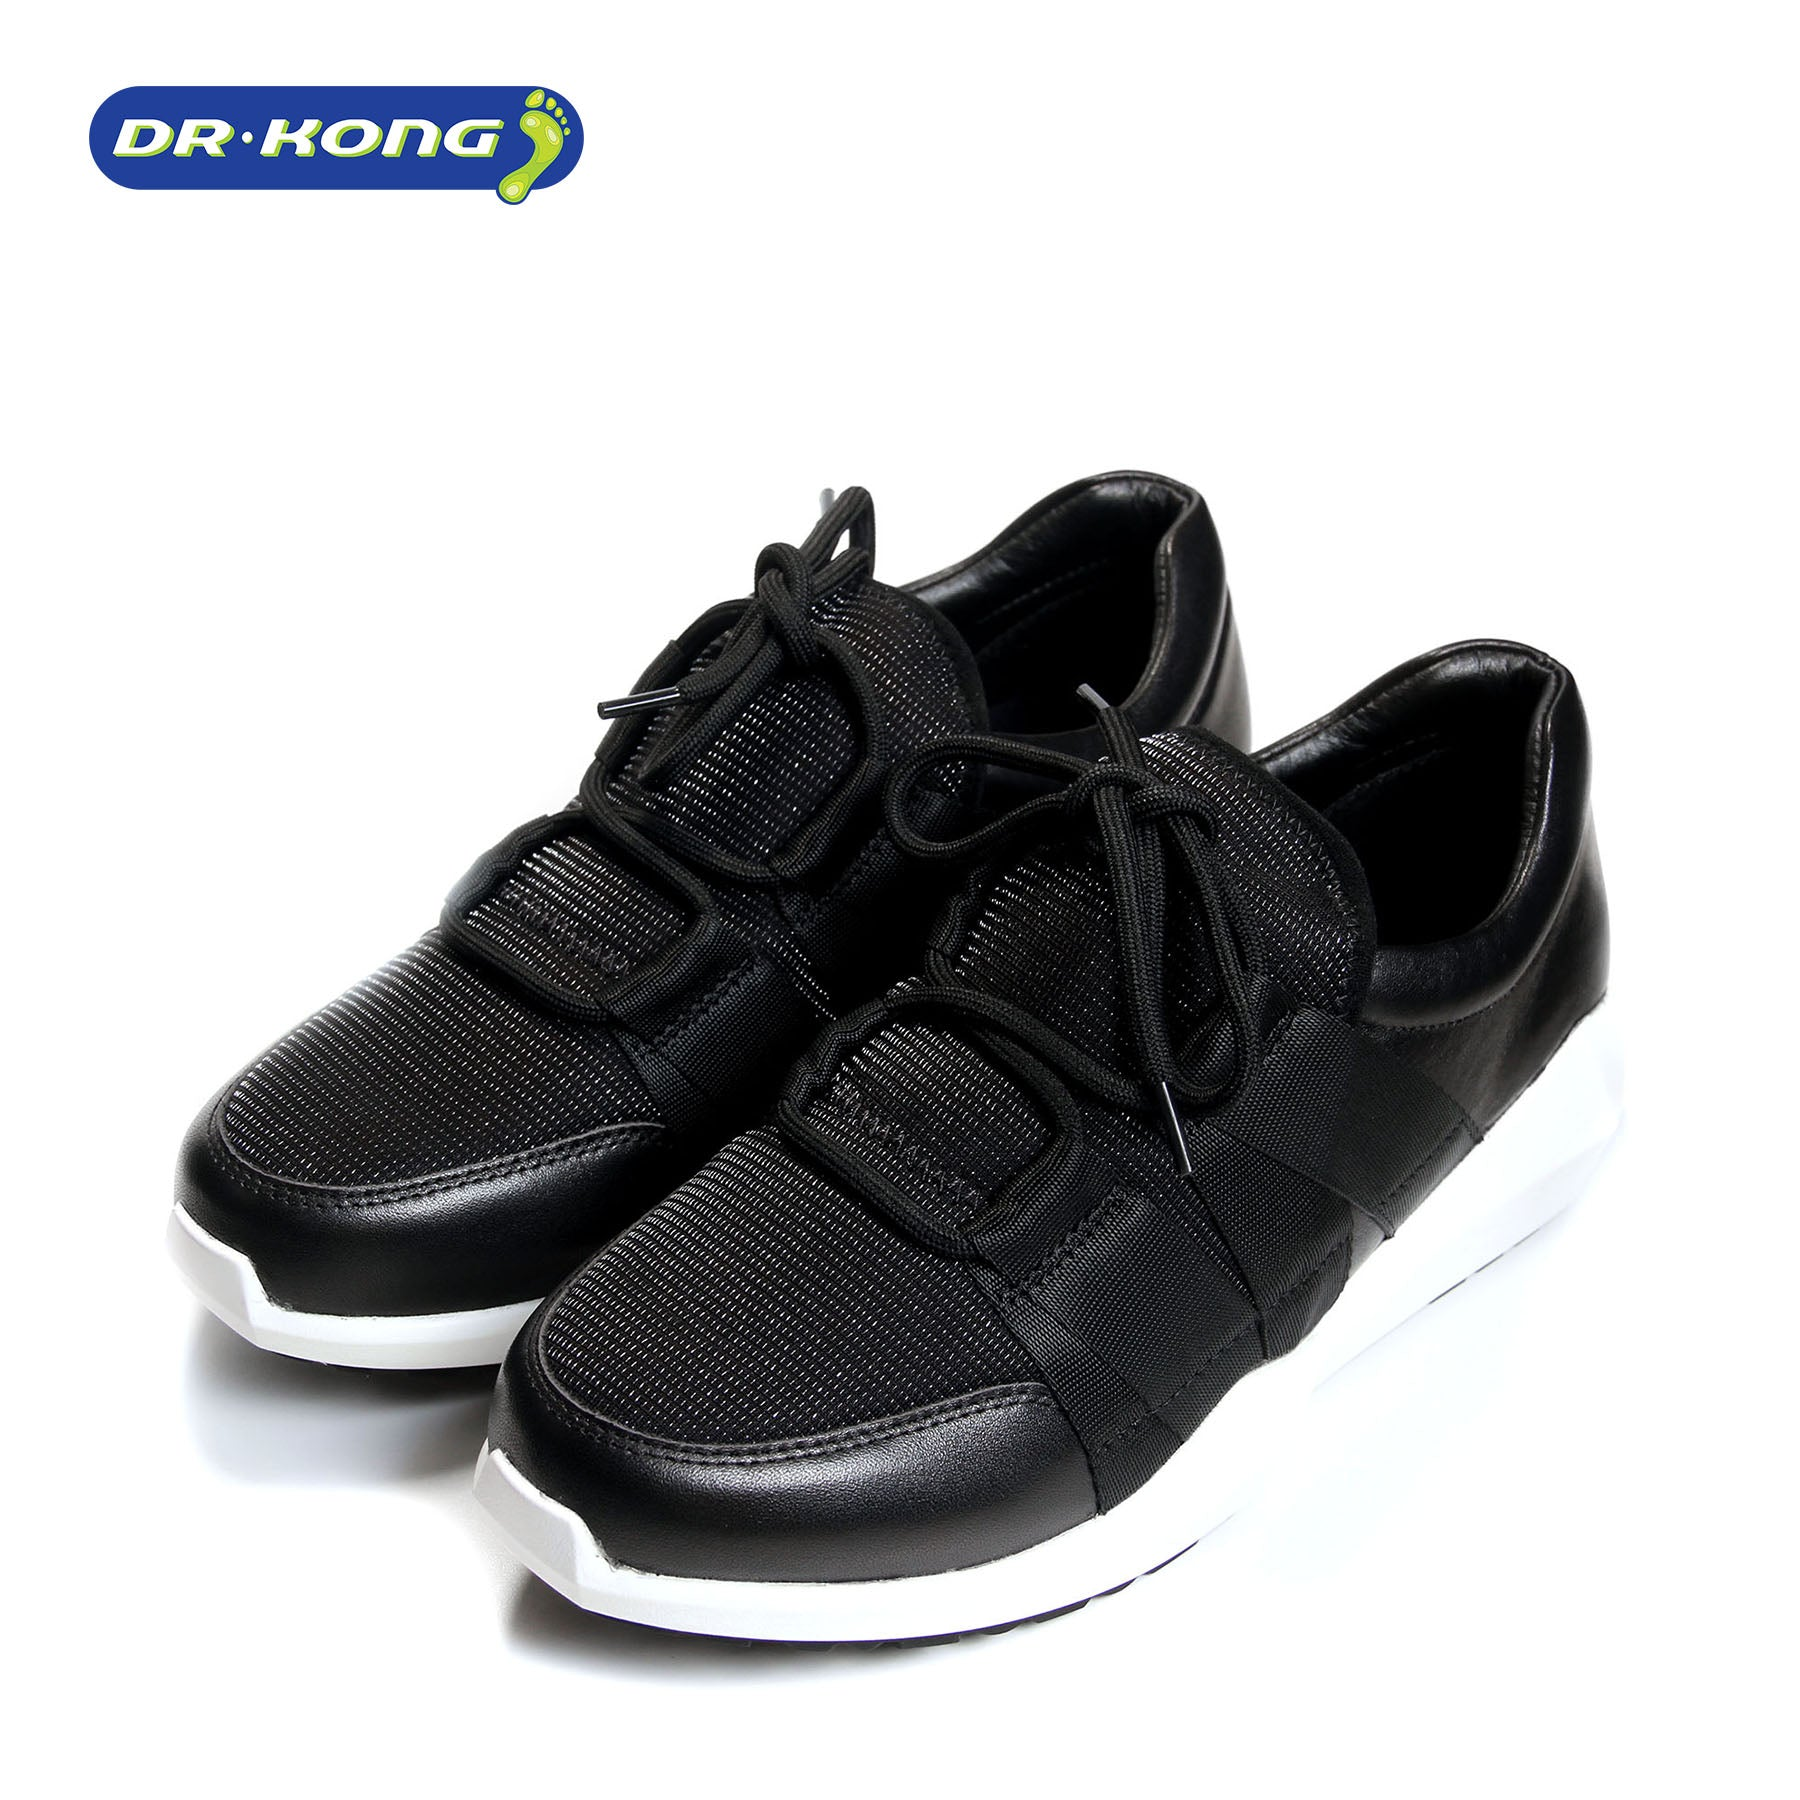 Dr. Kong Healthy Women Sneakers (Black) W5001041